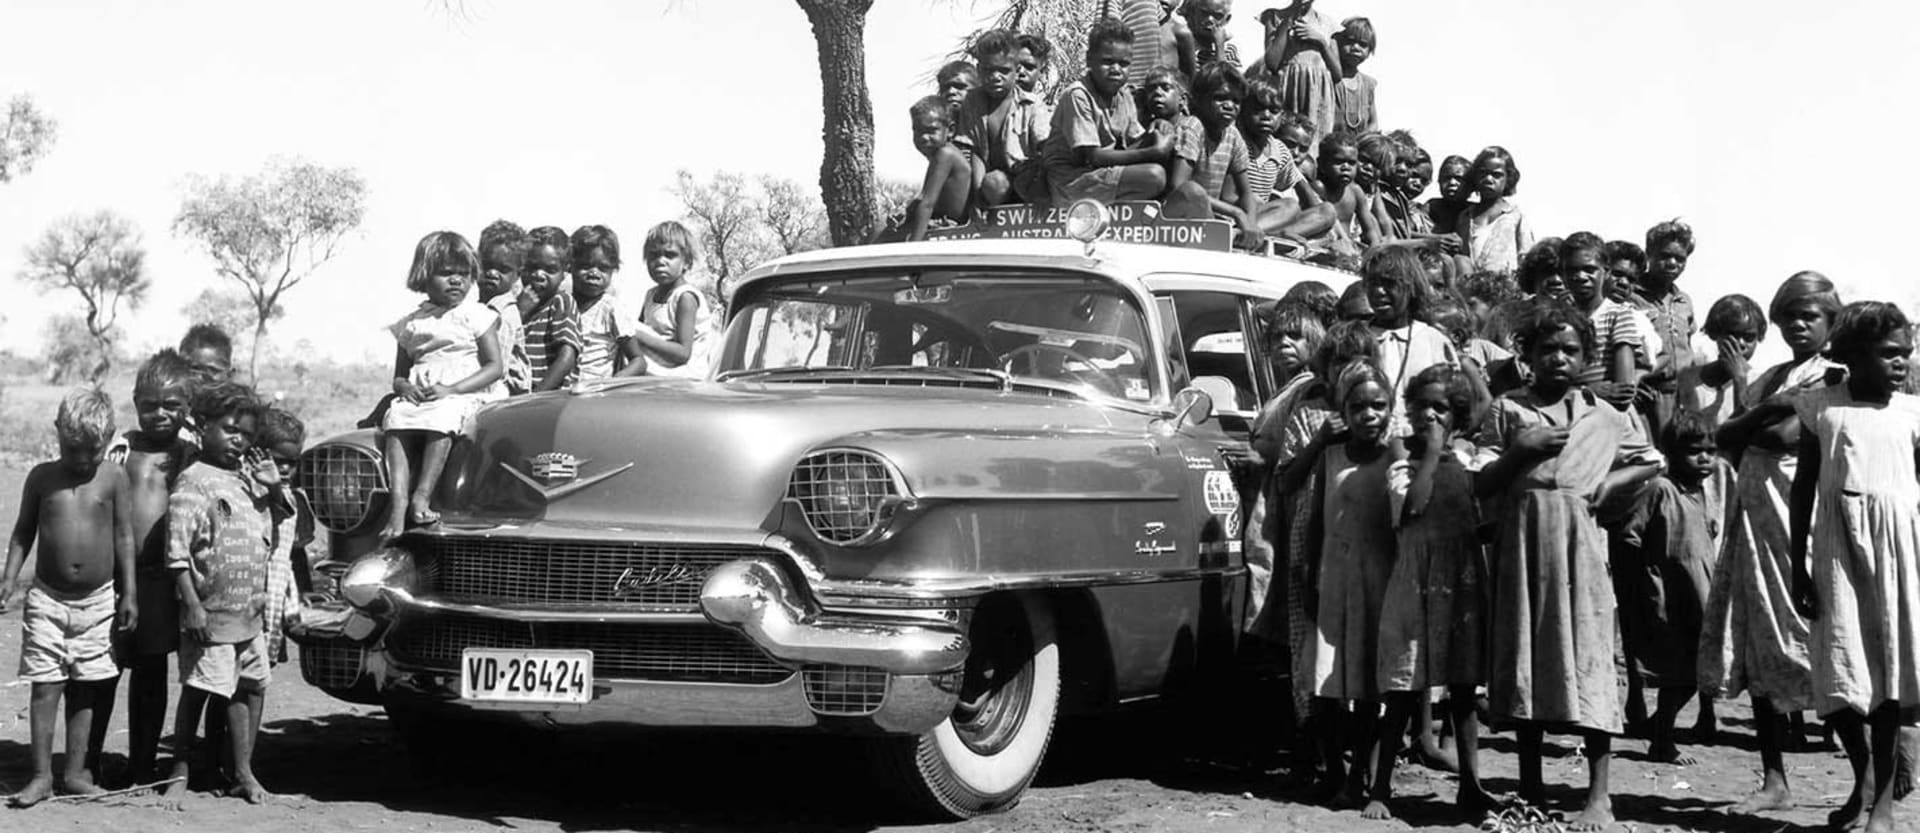 1959 Anglo Swiss Trans Australia Expedition